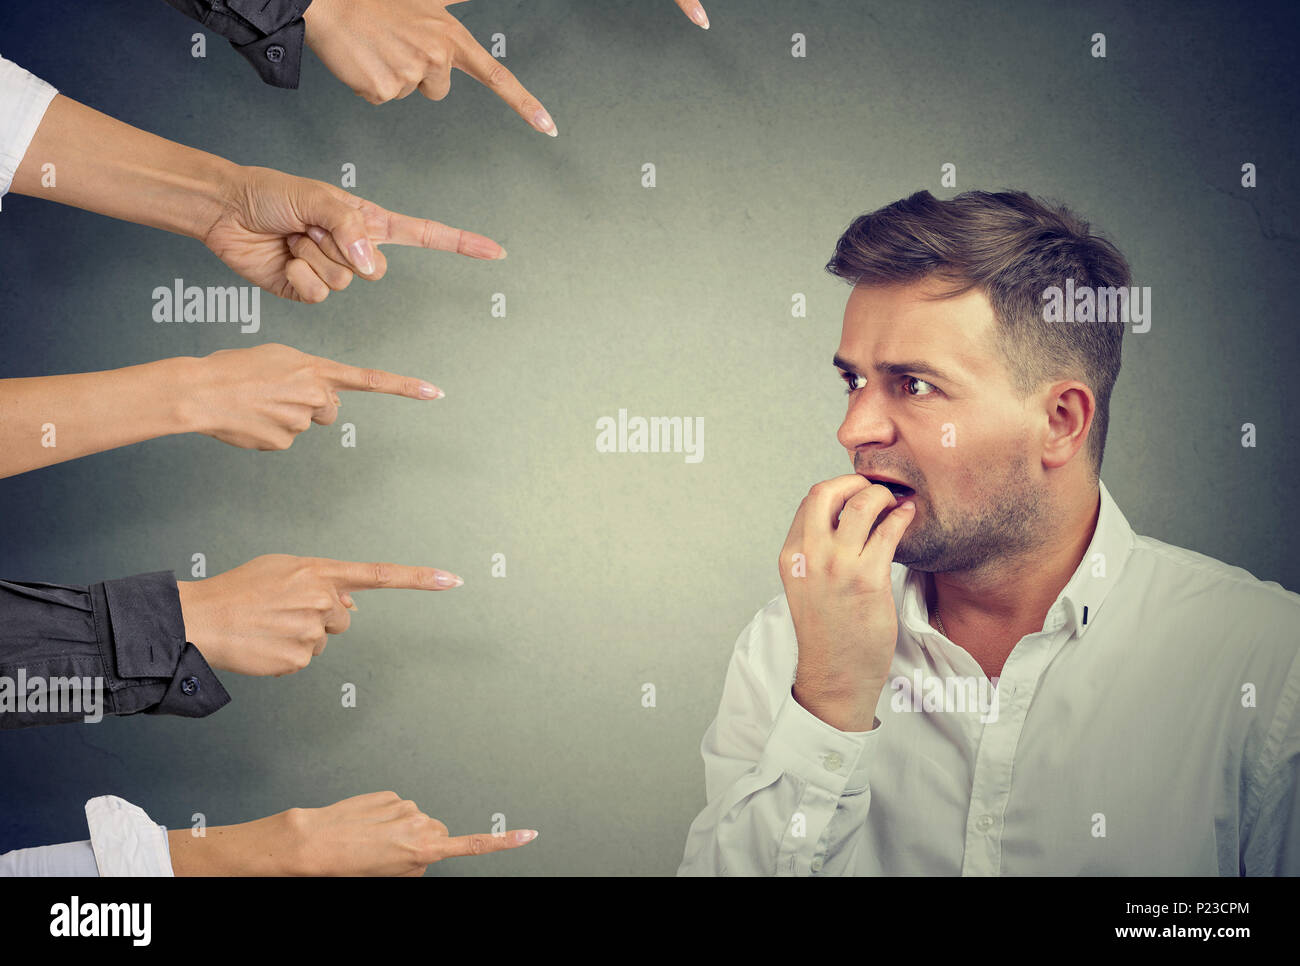 Man looking terrified while crop people pointing at him in blames. Stock Photo